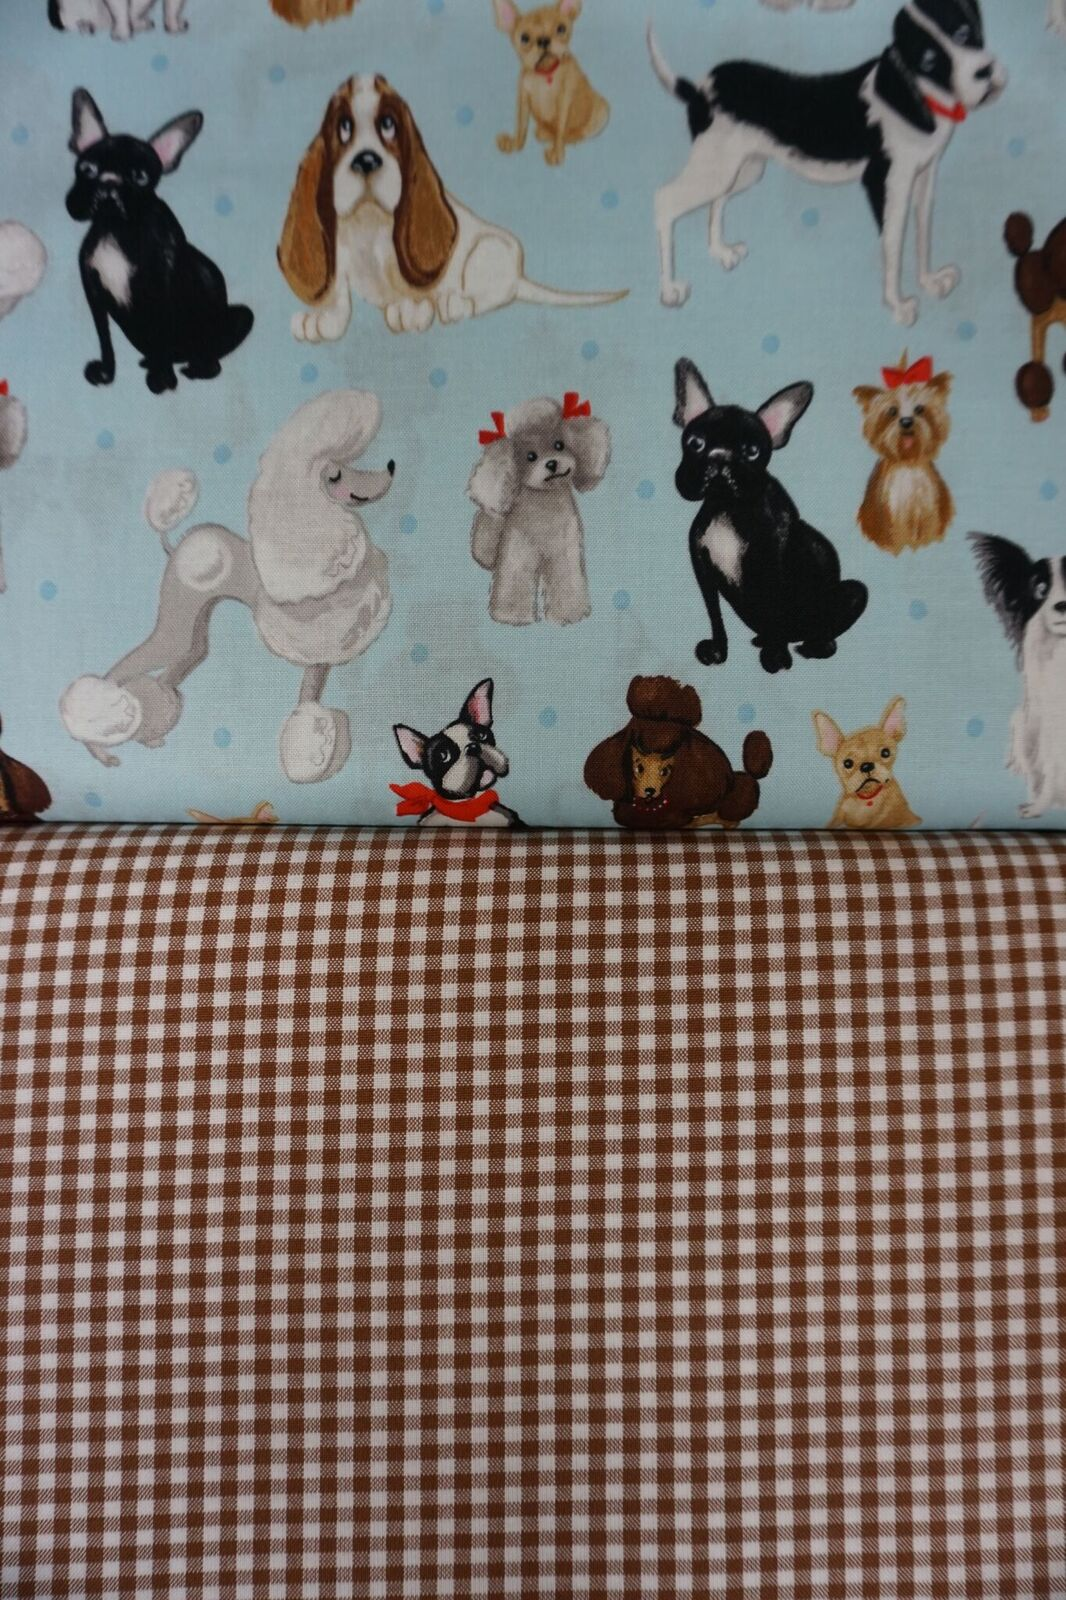 Delightful Doggies is a reversible fabric combination available from Nana's Creations.